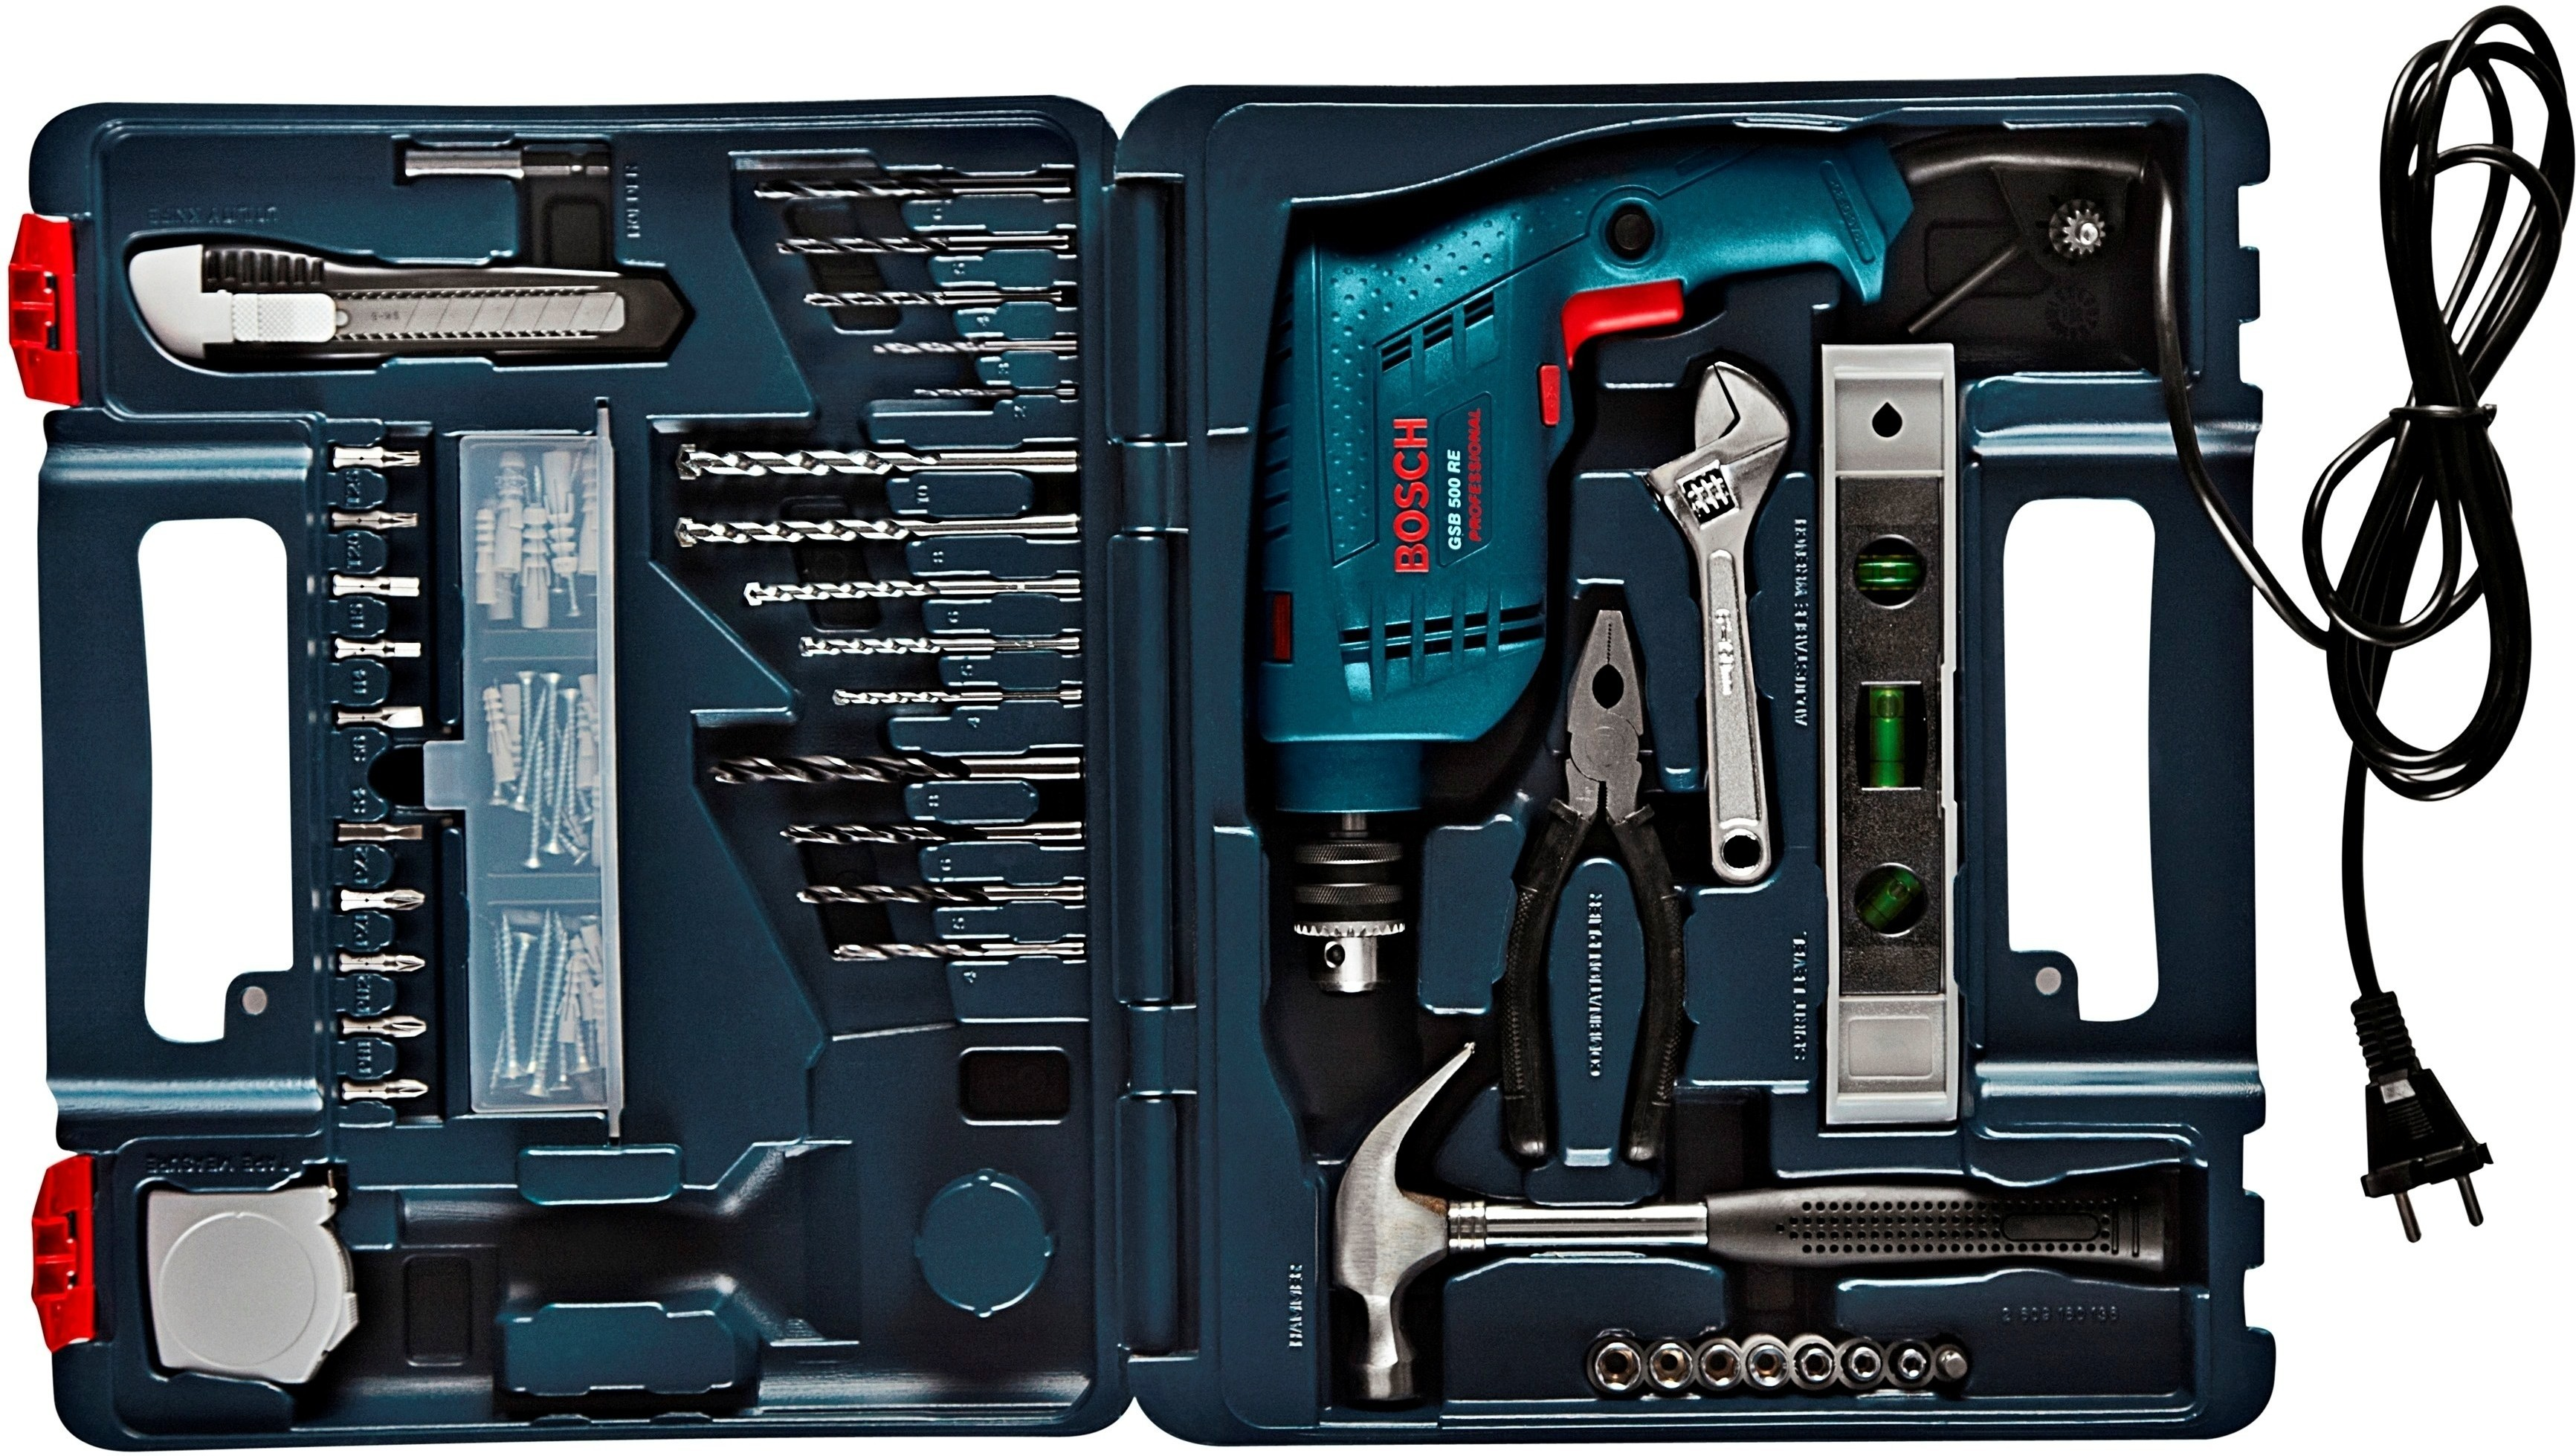 bosch gsb 500 re kit power hand tool kit price in india buy bosch gsb 500 re kit power. Black Bedroom Furniture Sets. Home Design Ideas